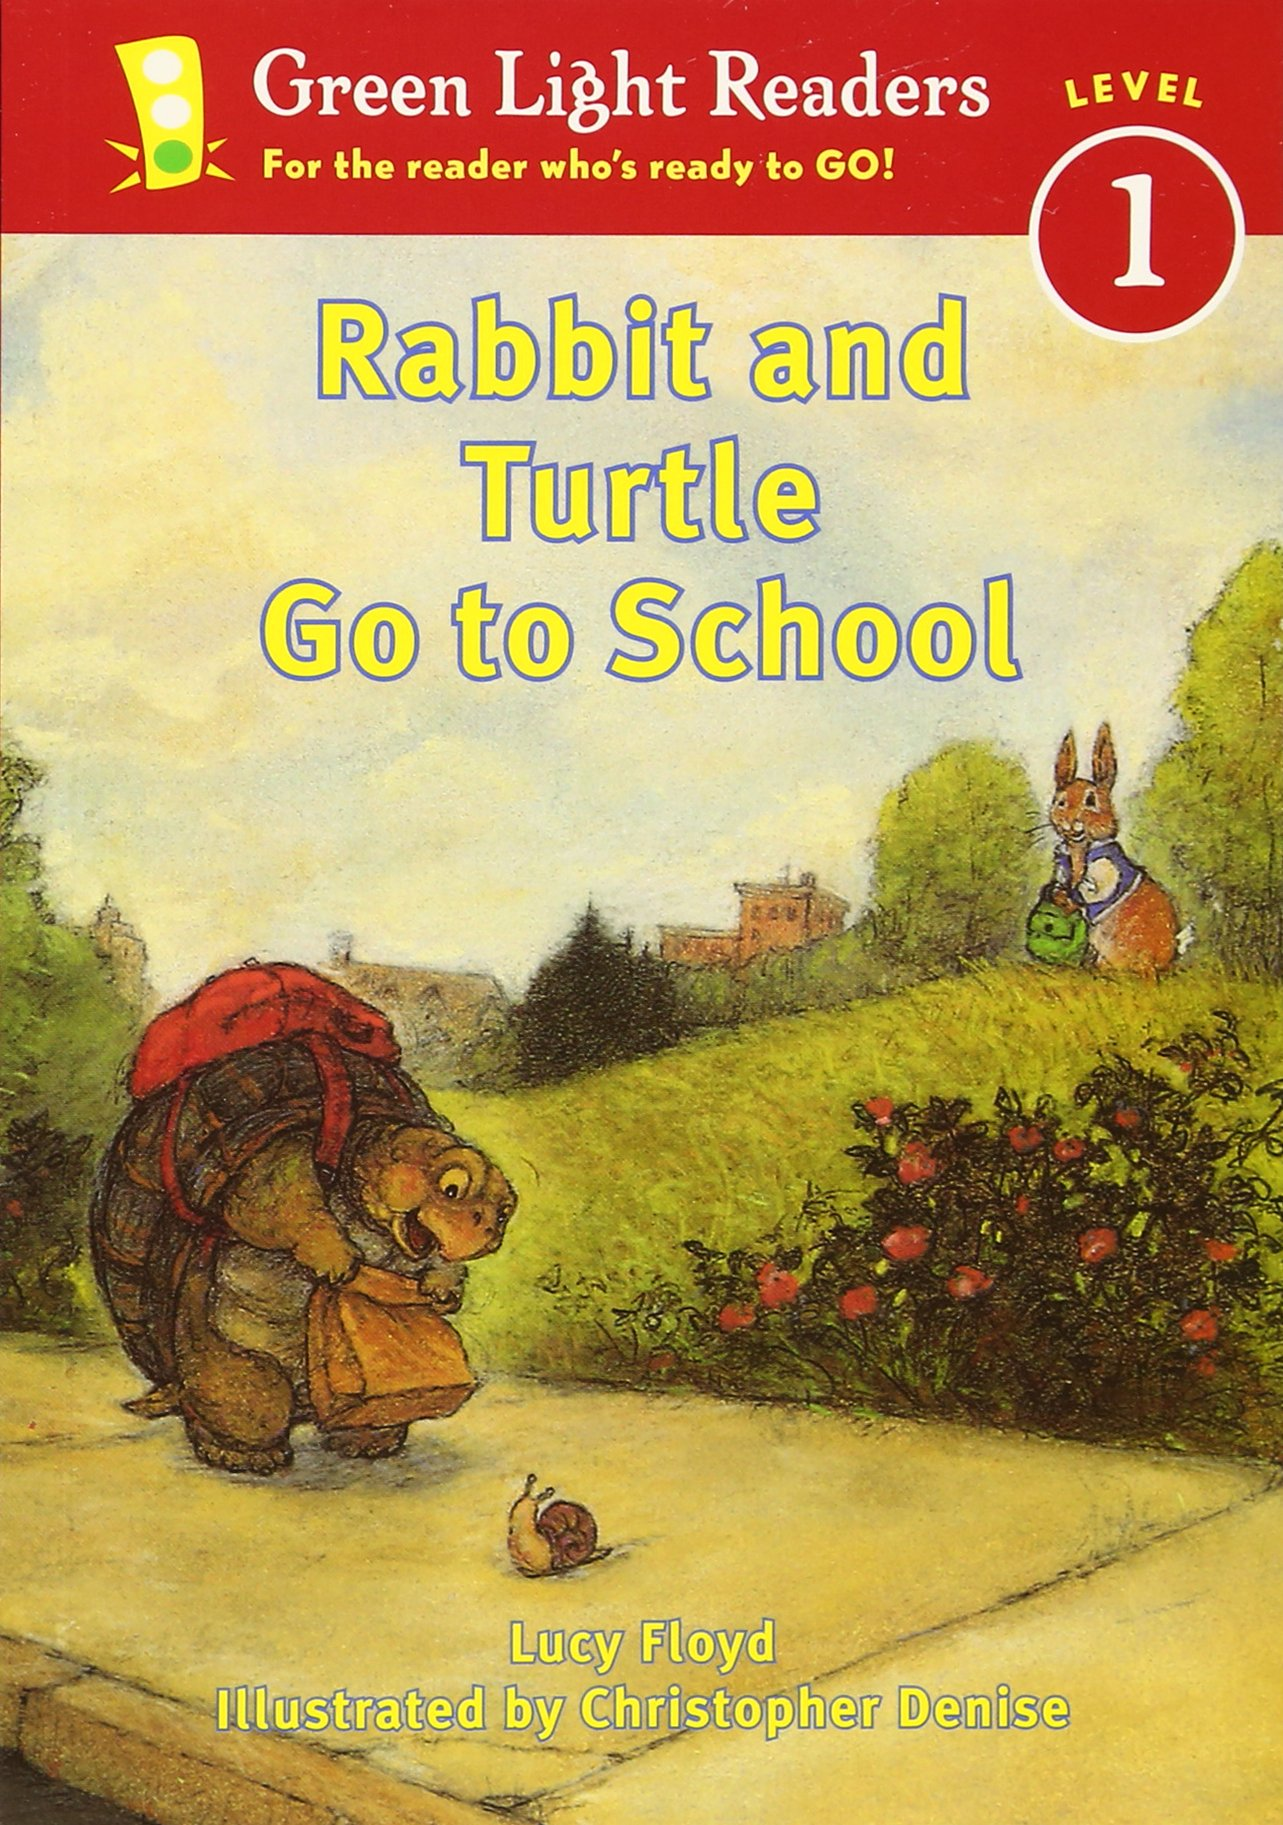 Download Rabbit and Turtle Go to School (Green Light Readers Level 1) PDF